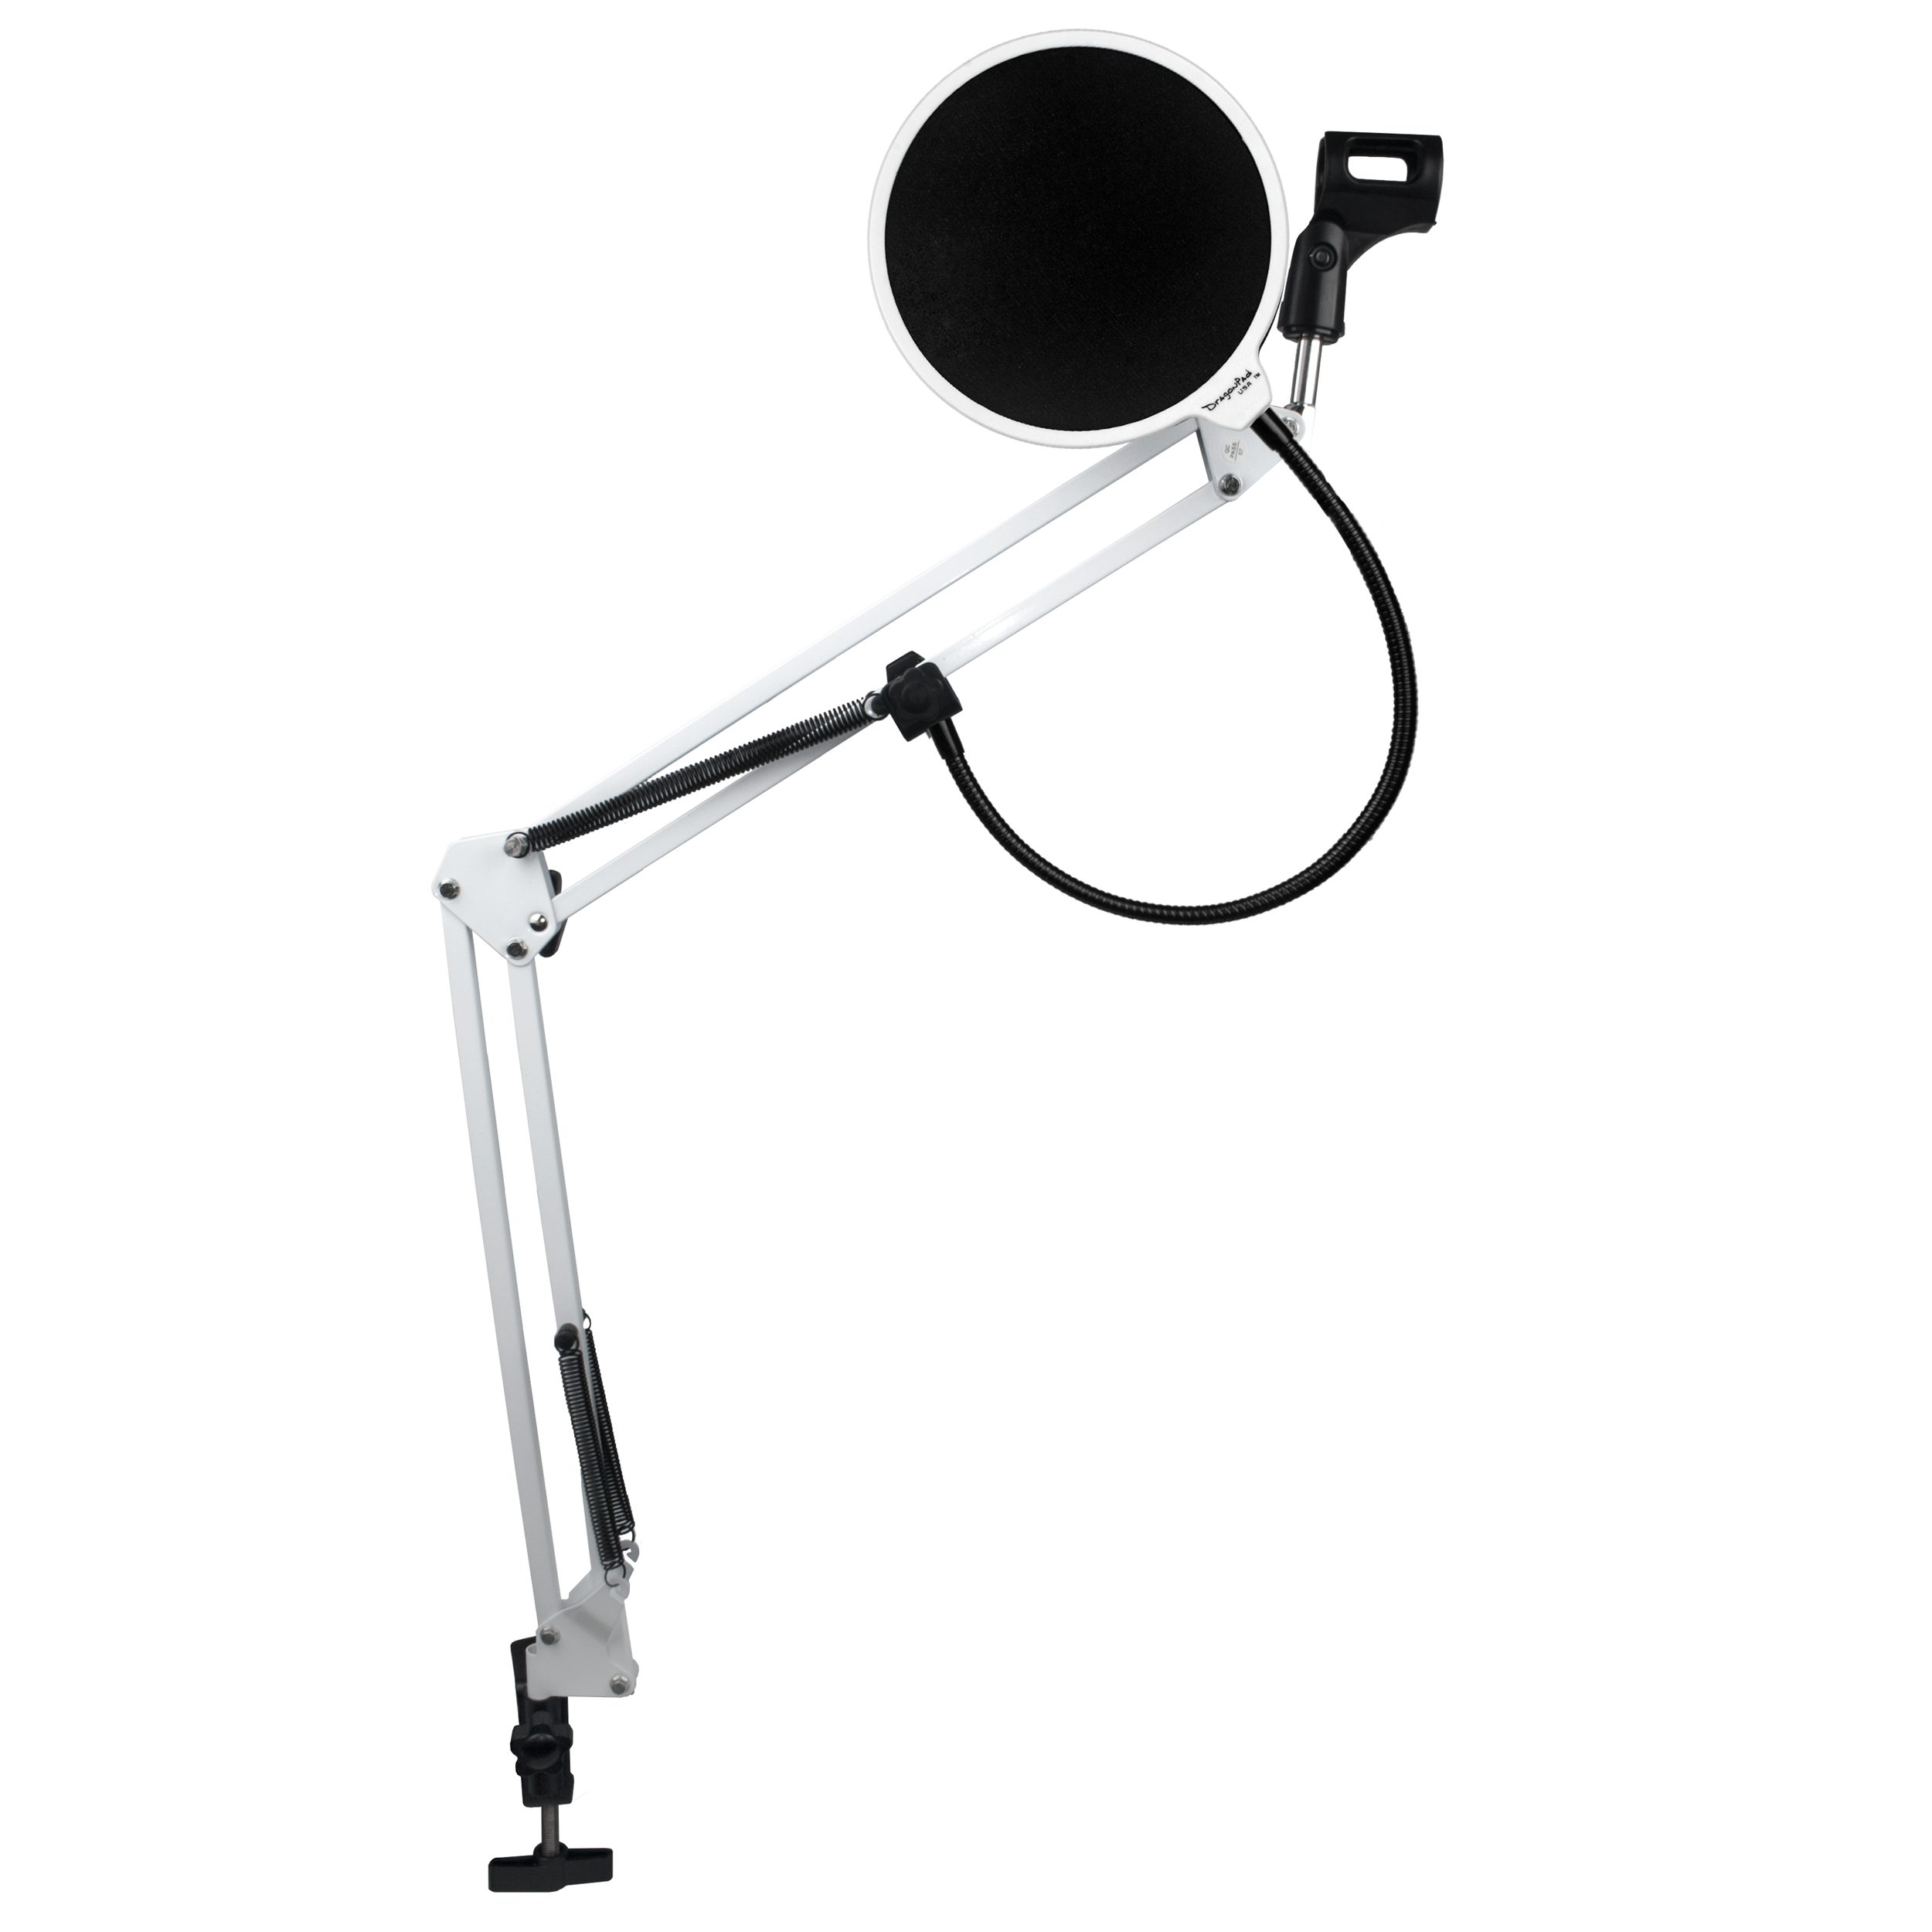 DragonPad USA Microphone Scissor Boom Arm with Desk Mount and Studio Pop Filter - White/White